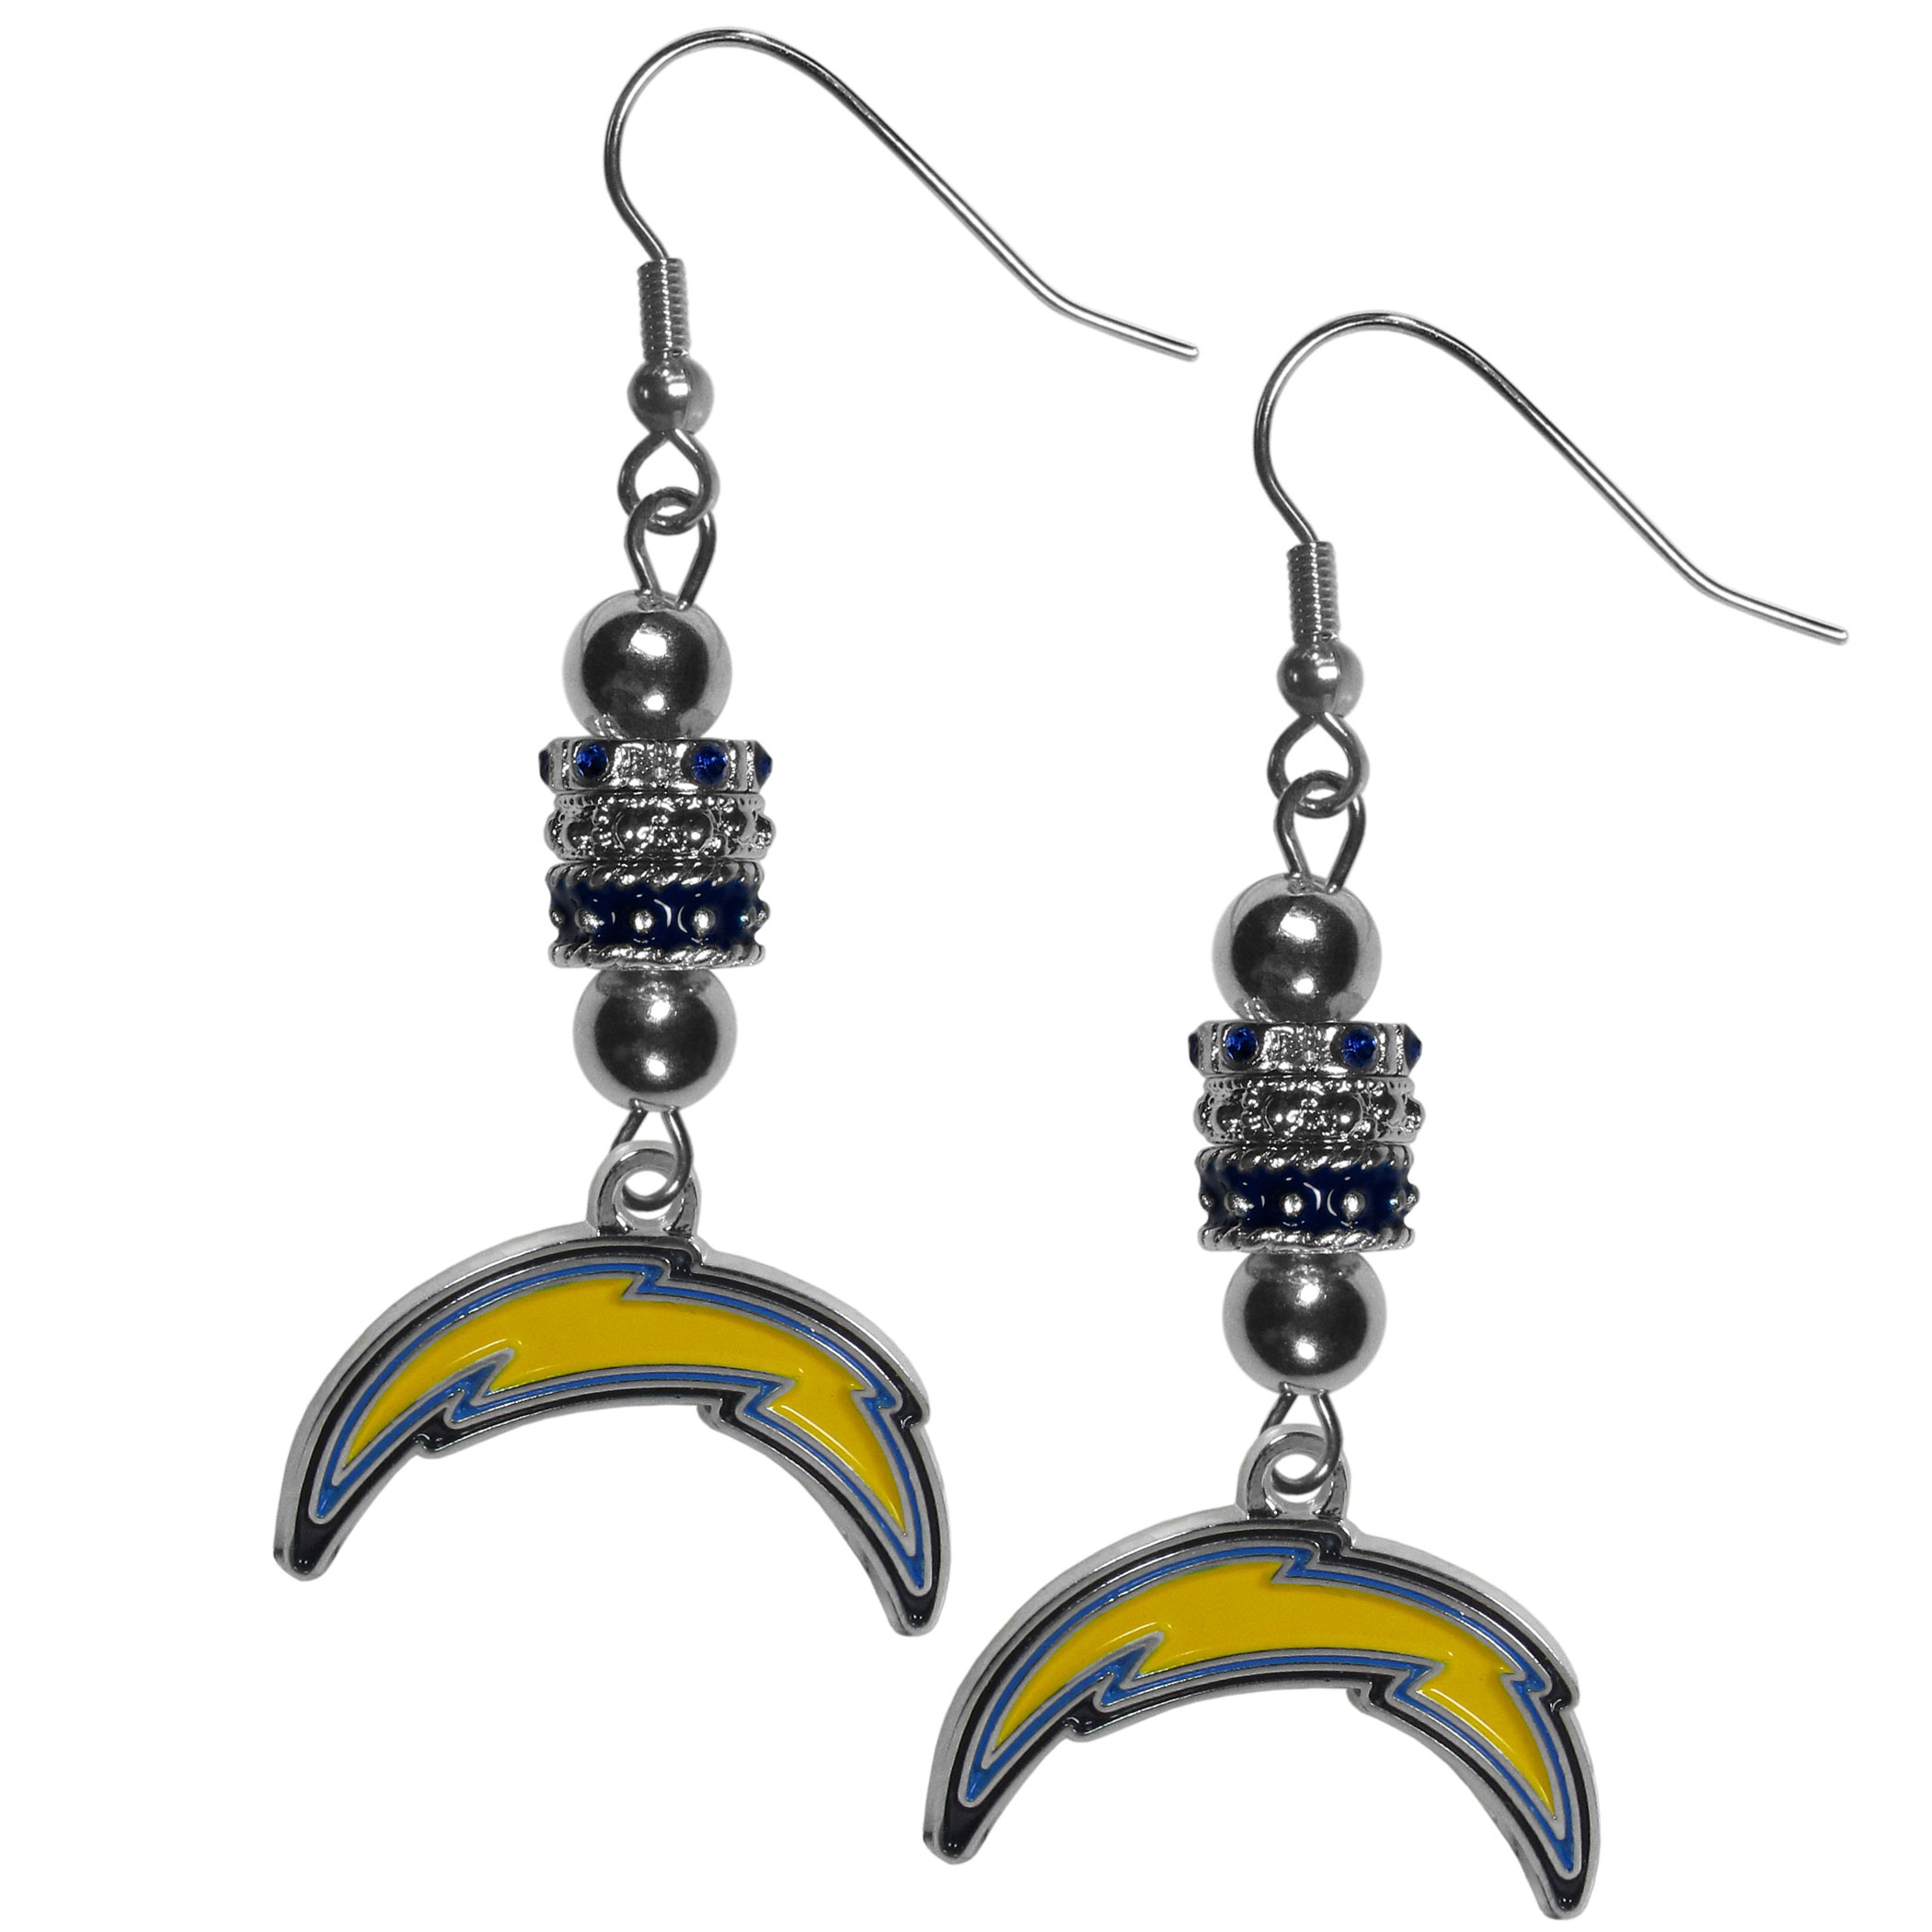 Los Angeles Chargers Euro Bead Earrings - These beautiful euro style earrings feature 3 euro beads and a detailed Los Angeles Chargers charm on hypoallergenic fishhook posts.